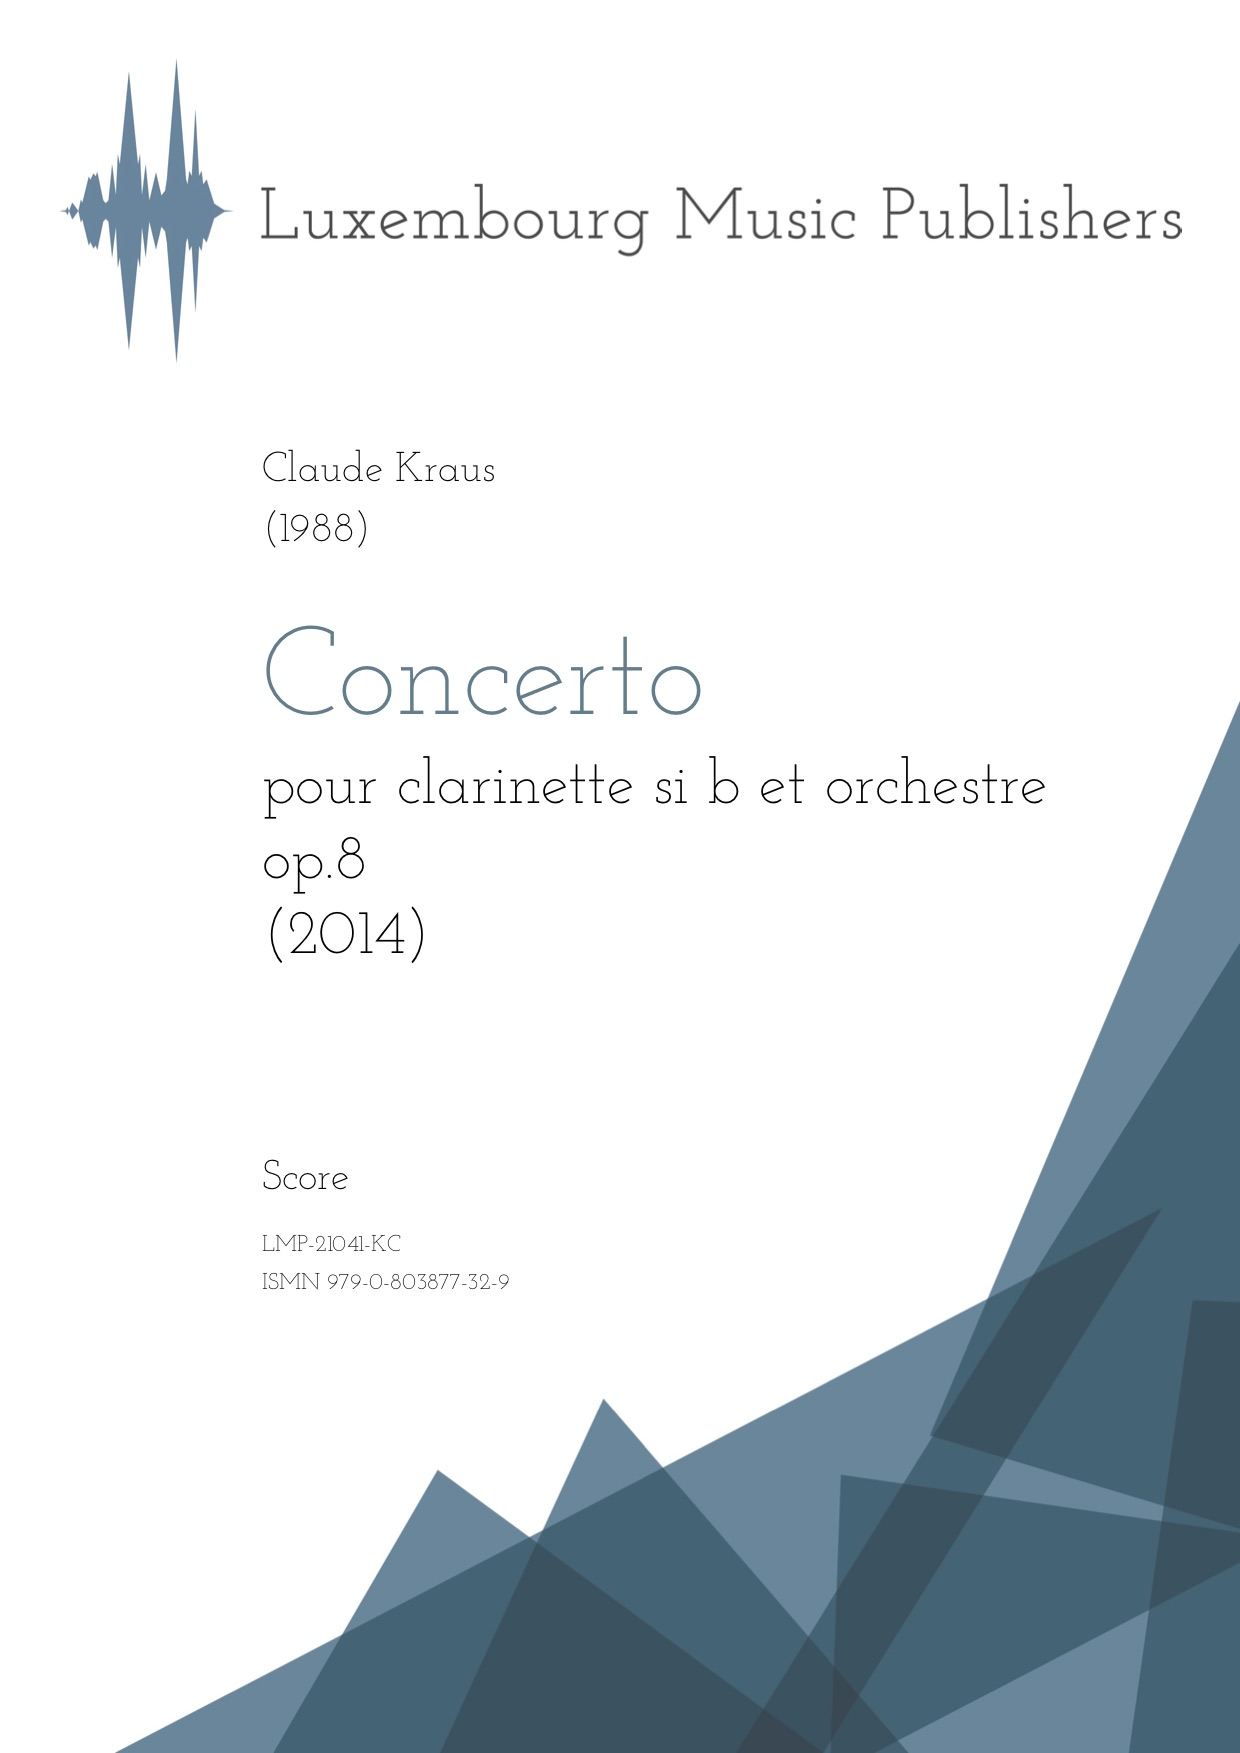 Concerto. Sheet Music by Claude Kraus, composer. Music for solo instrument and symphonic orchestra. Concerto for clarinet Bb and orchestra. Music for solo clarinet. Score.